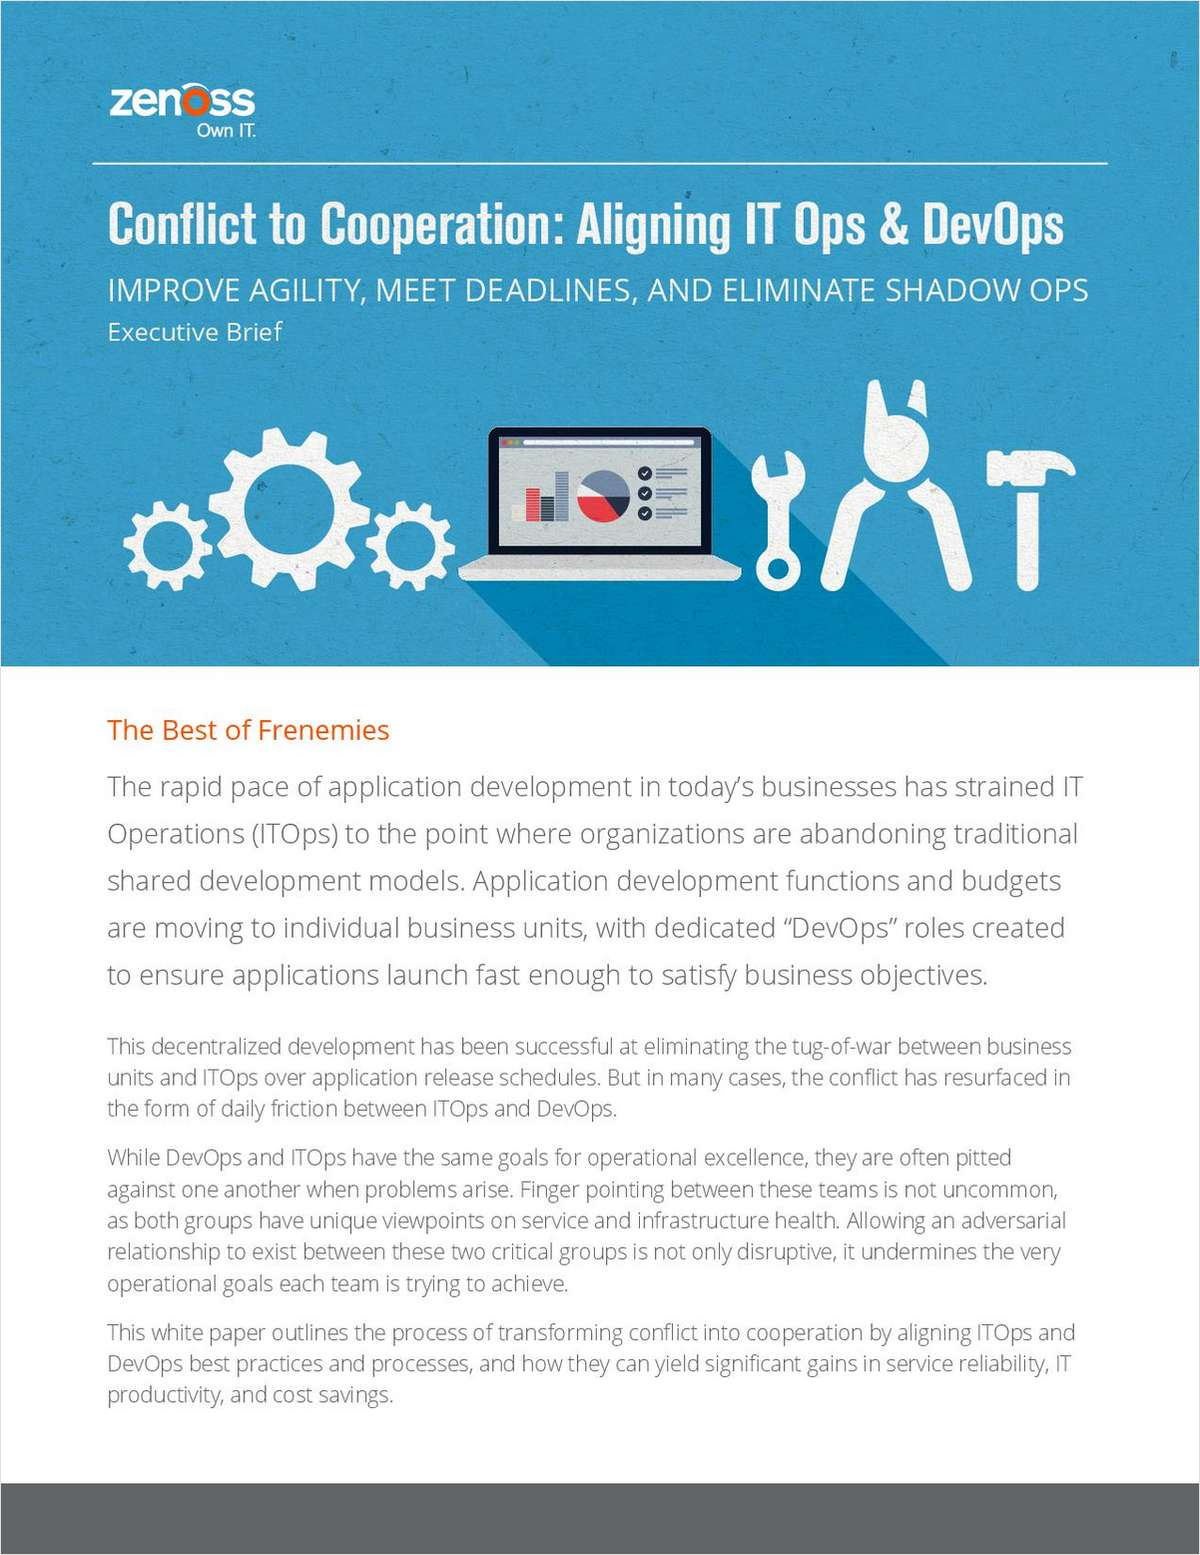 Conflict to Cooperation: Aligning IT Ops & DevOps